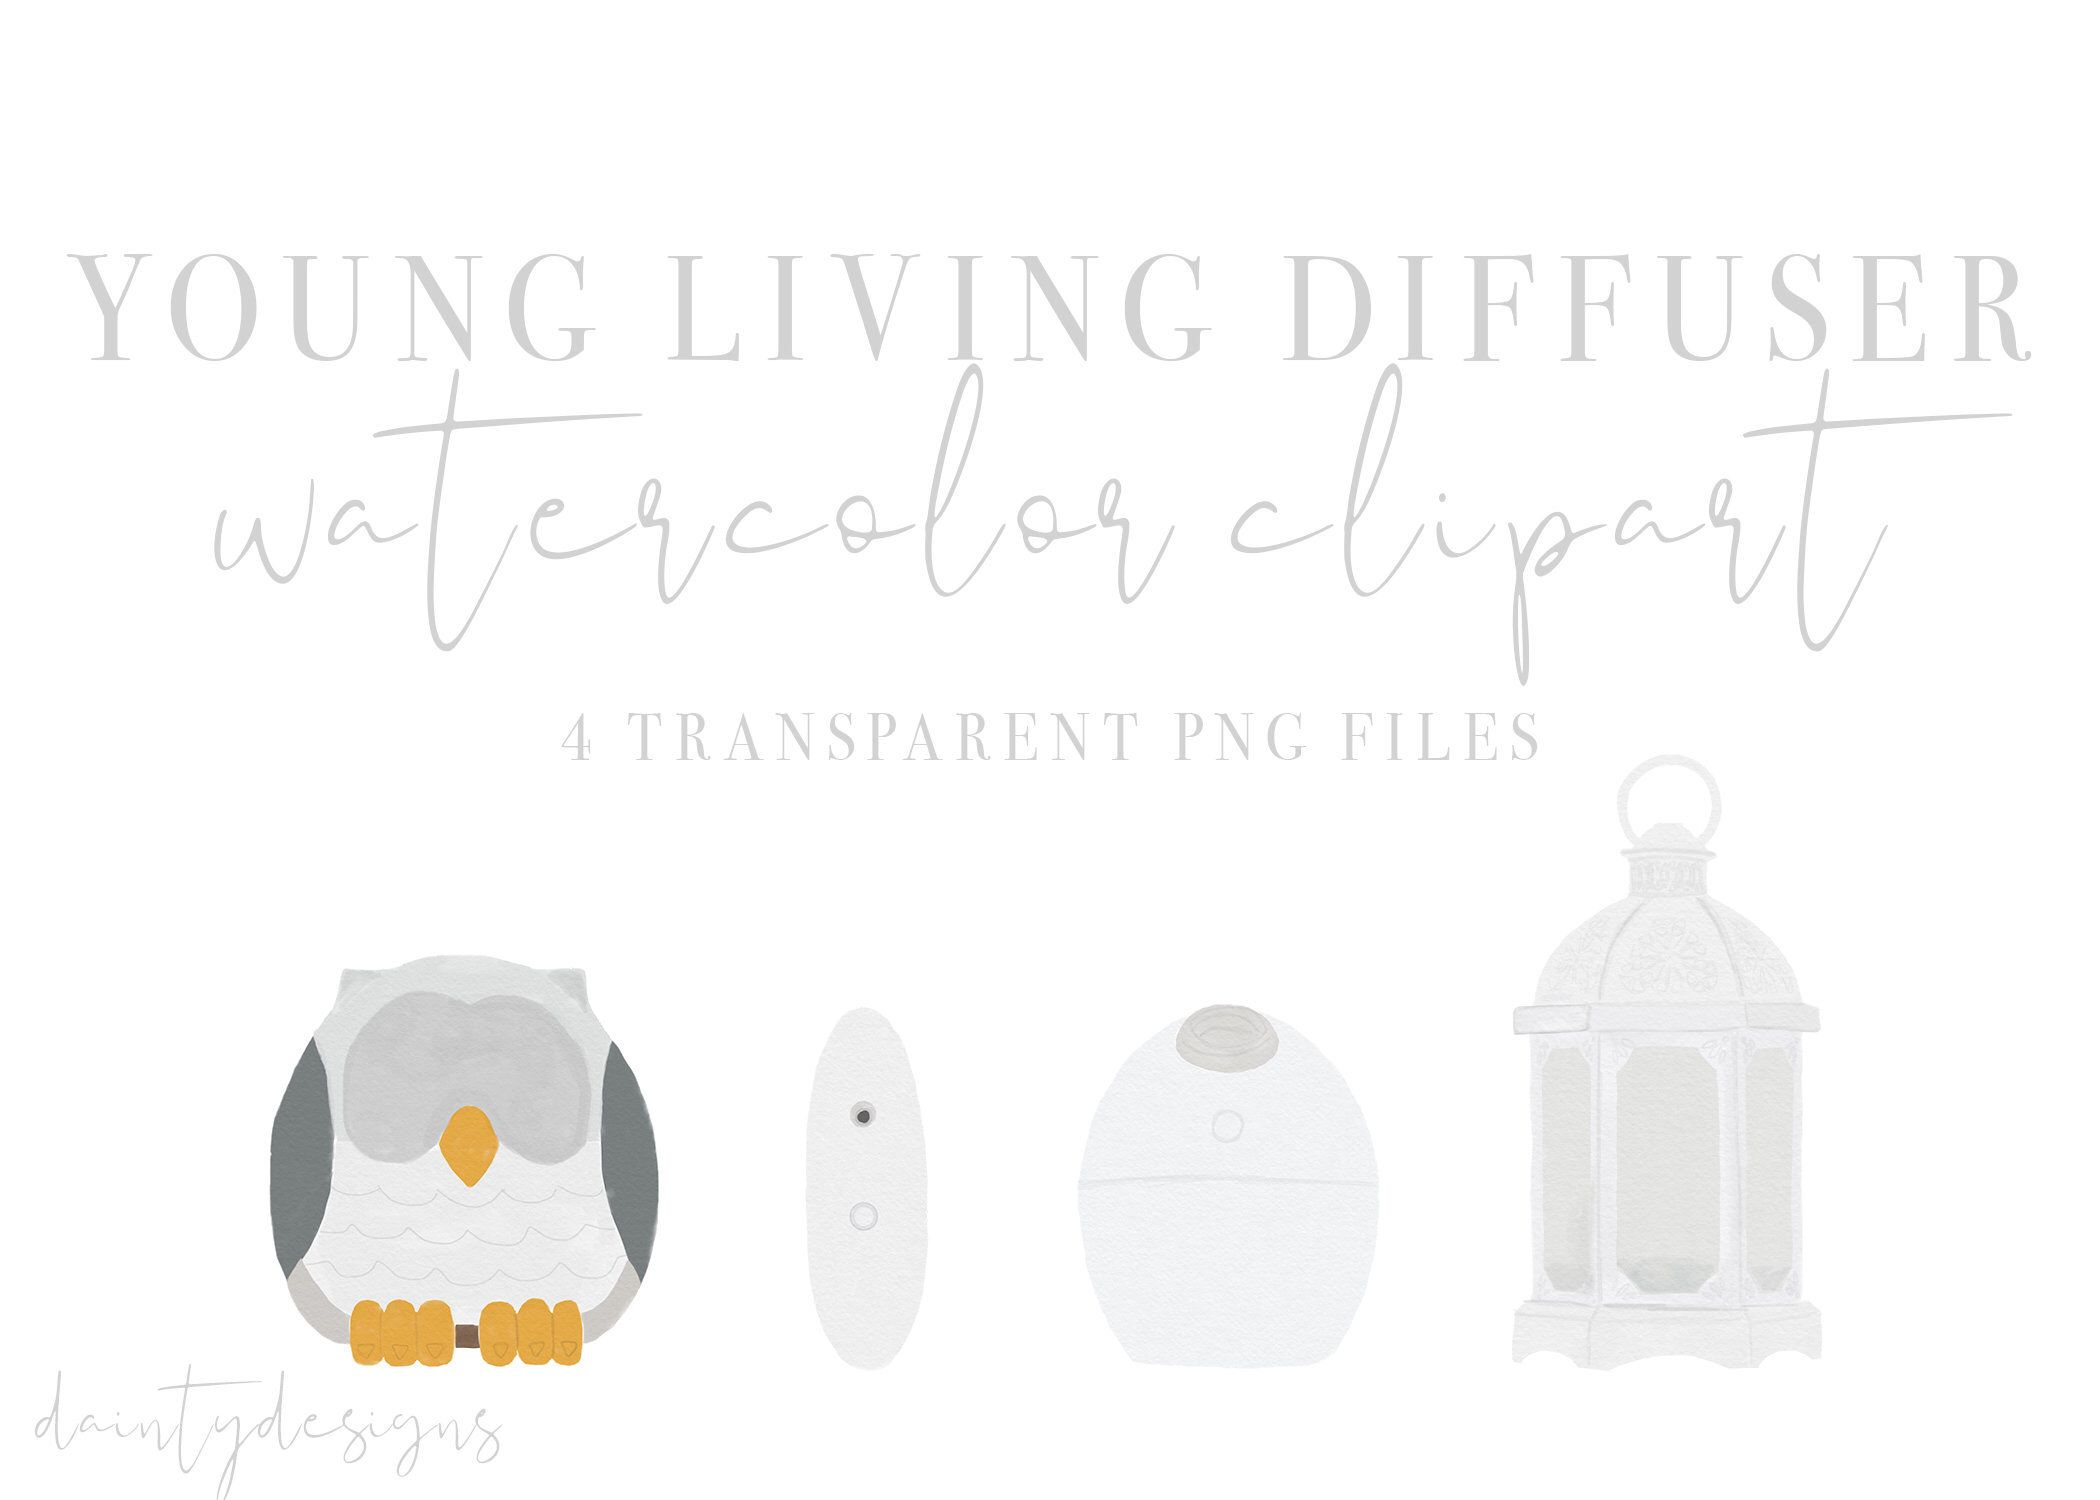 Watercolor Diffuser Clipart Young Living Diffusers Etsy In 2021 Young Living Diffuser Young Living Young Living Starter Kit